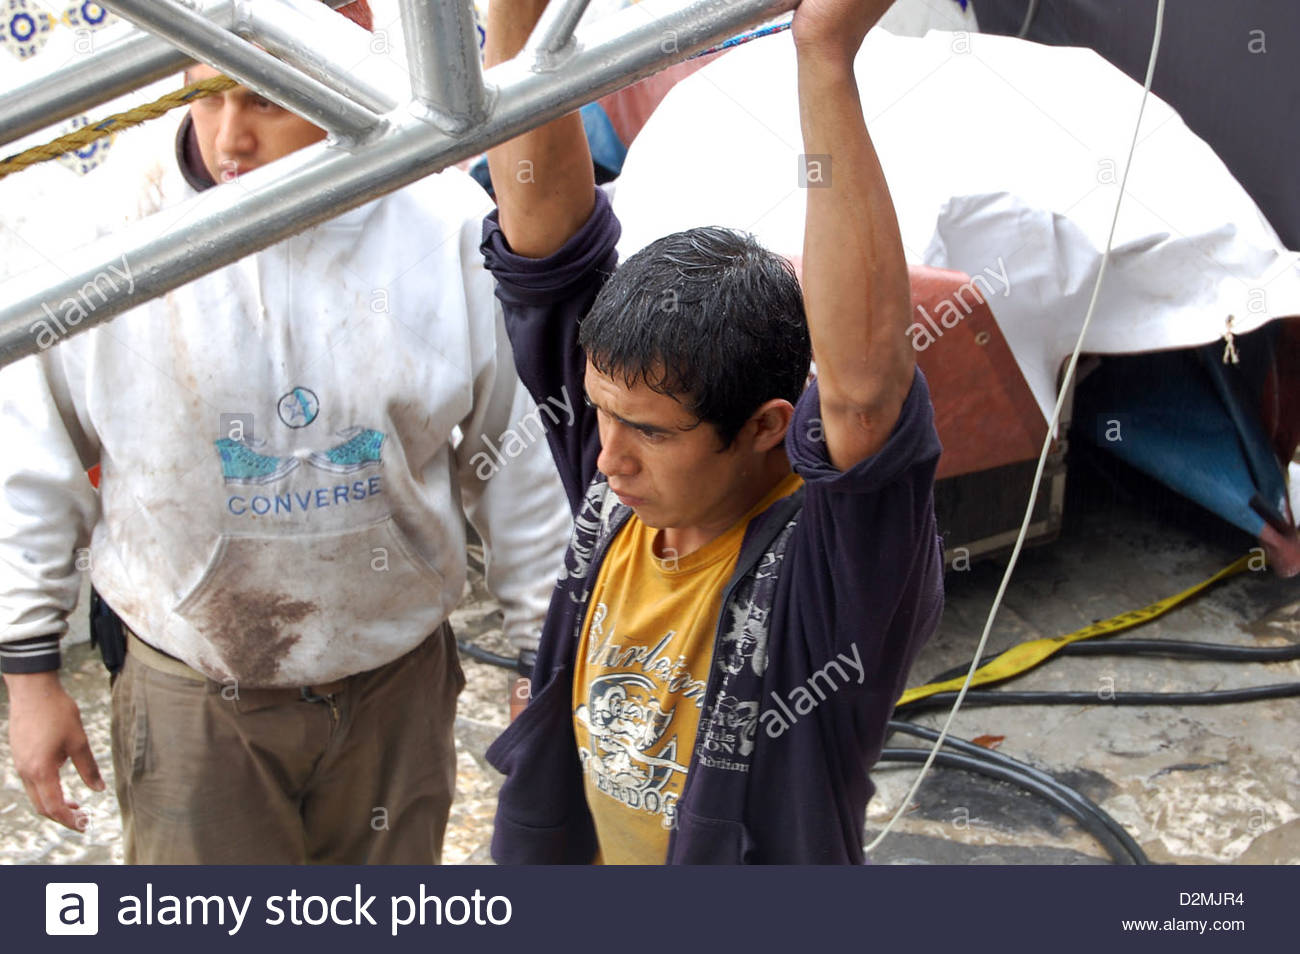 Closeup shot Mexican male roadie stage worker hoisting lifting section of scaffolding staging overhead. - Stock Image